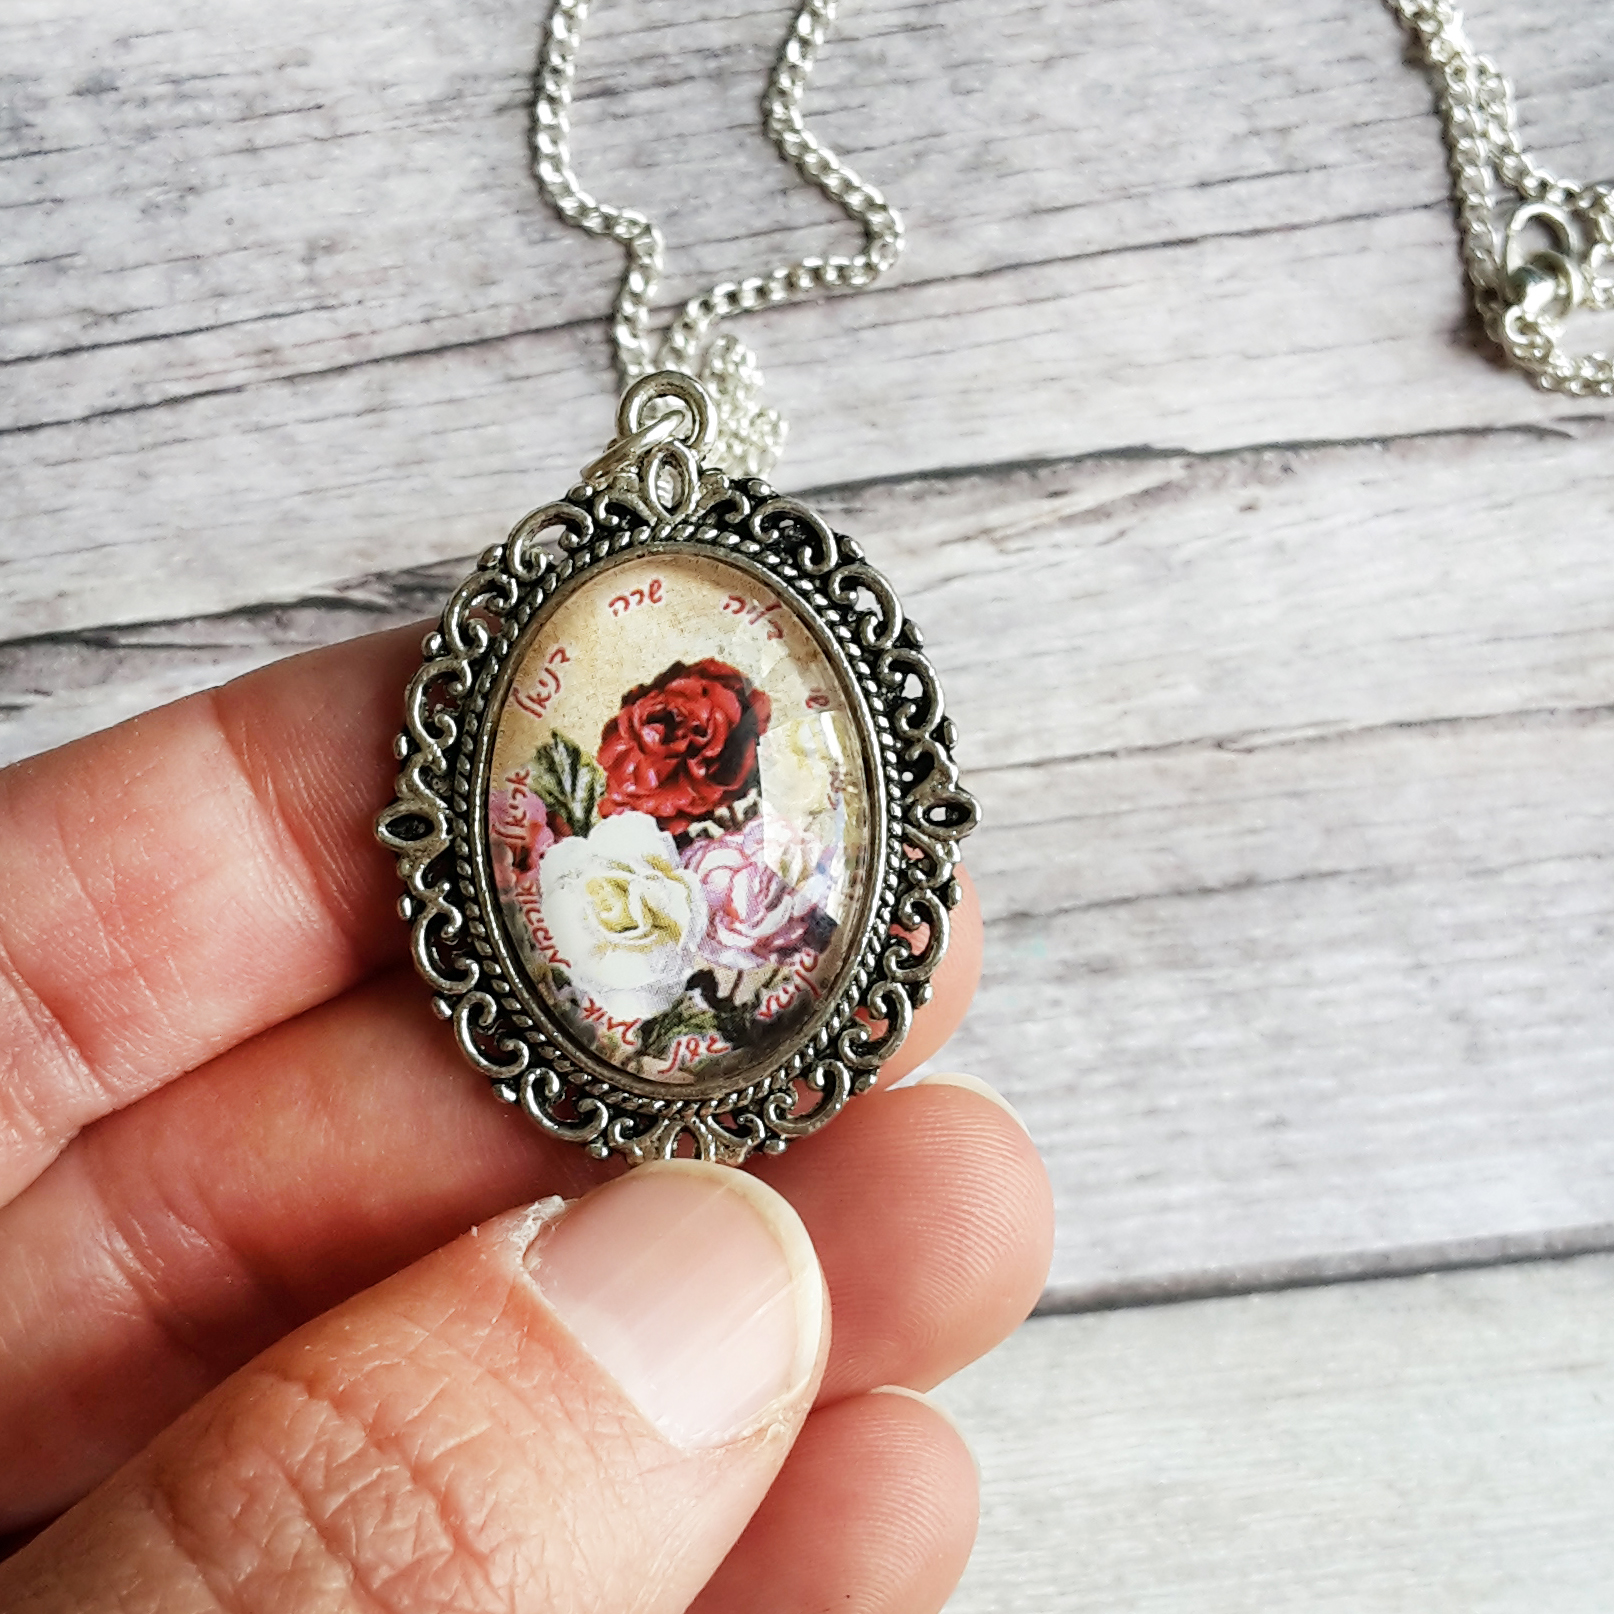 Personalized jewelry personalized gift for grandma personalized personalized jewelry personalized gift for grandma personalized necklace for mom custom pendant charm glass pendant vintage rose jewelry roses aloadofball Images